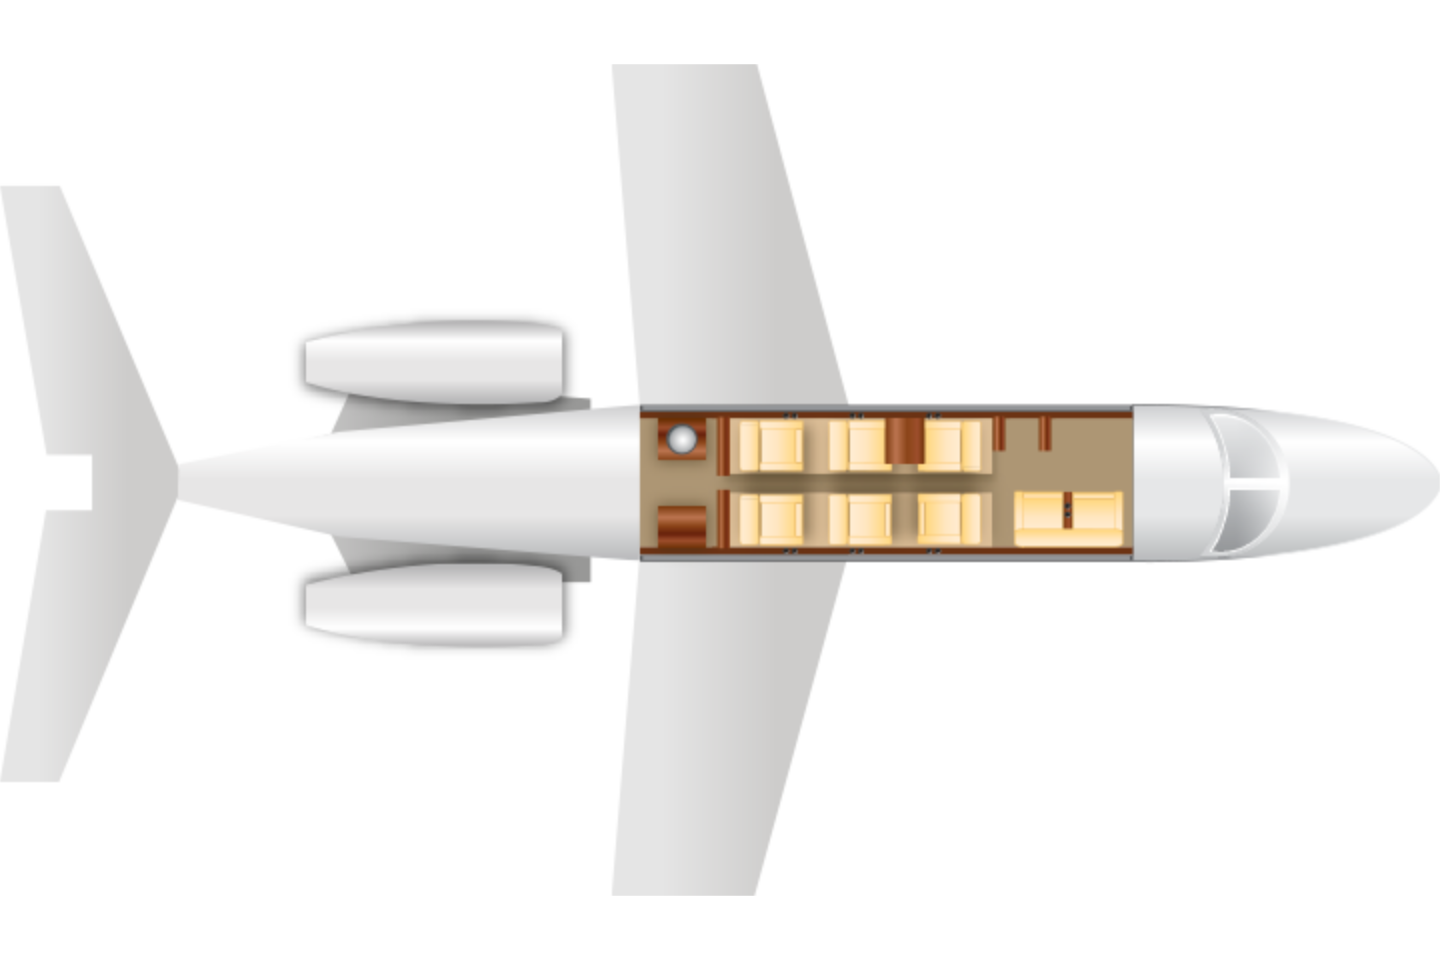 Private Mid Size Jet Citation Excel Floor Plan